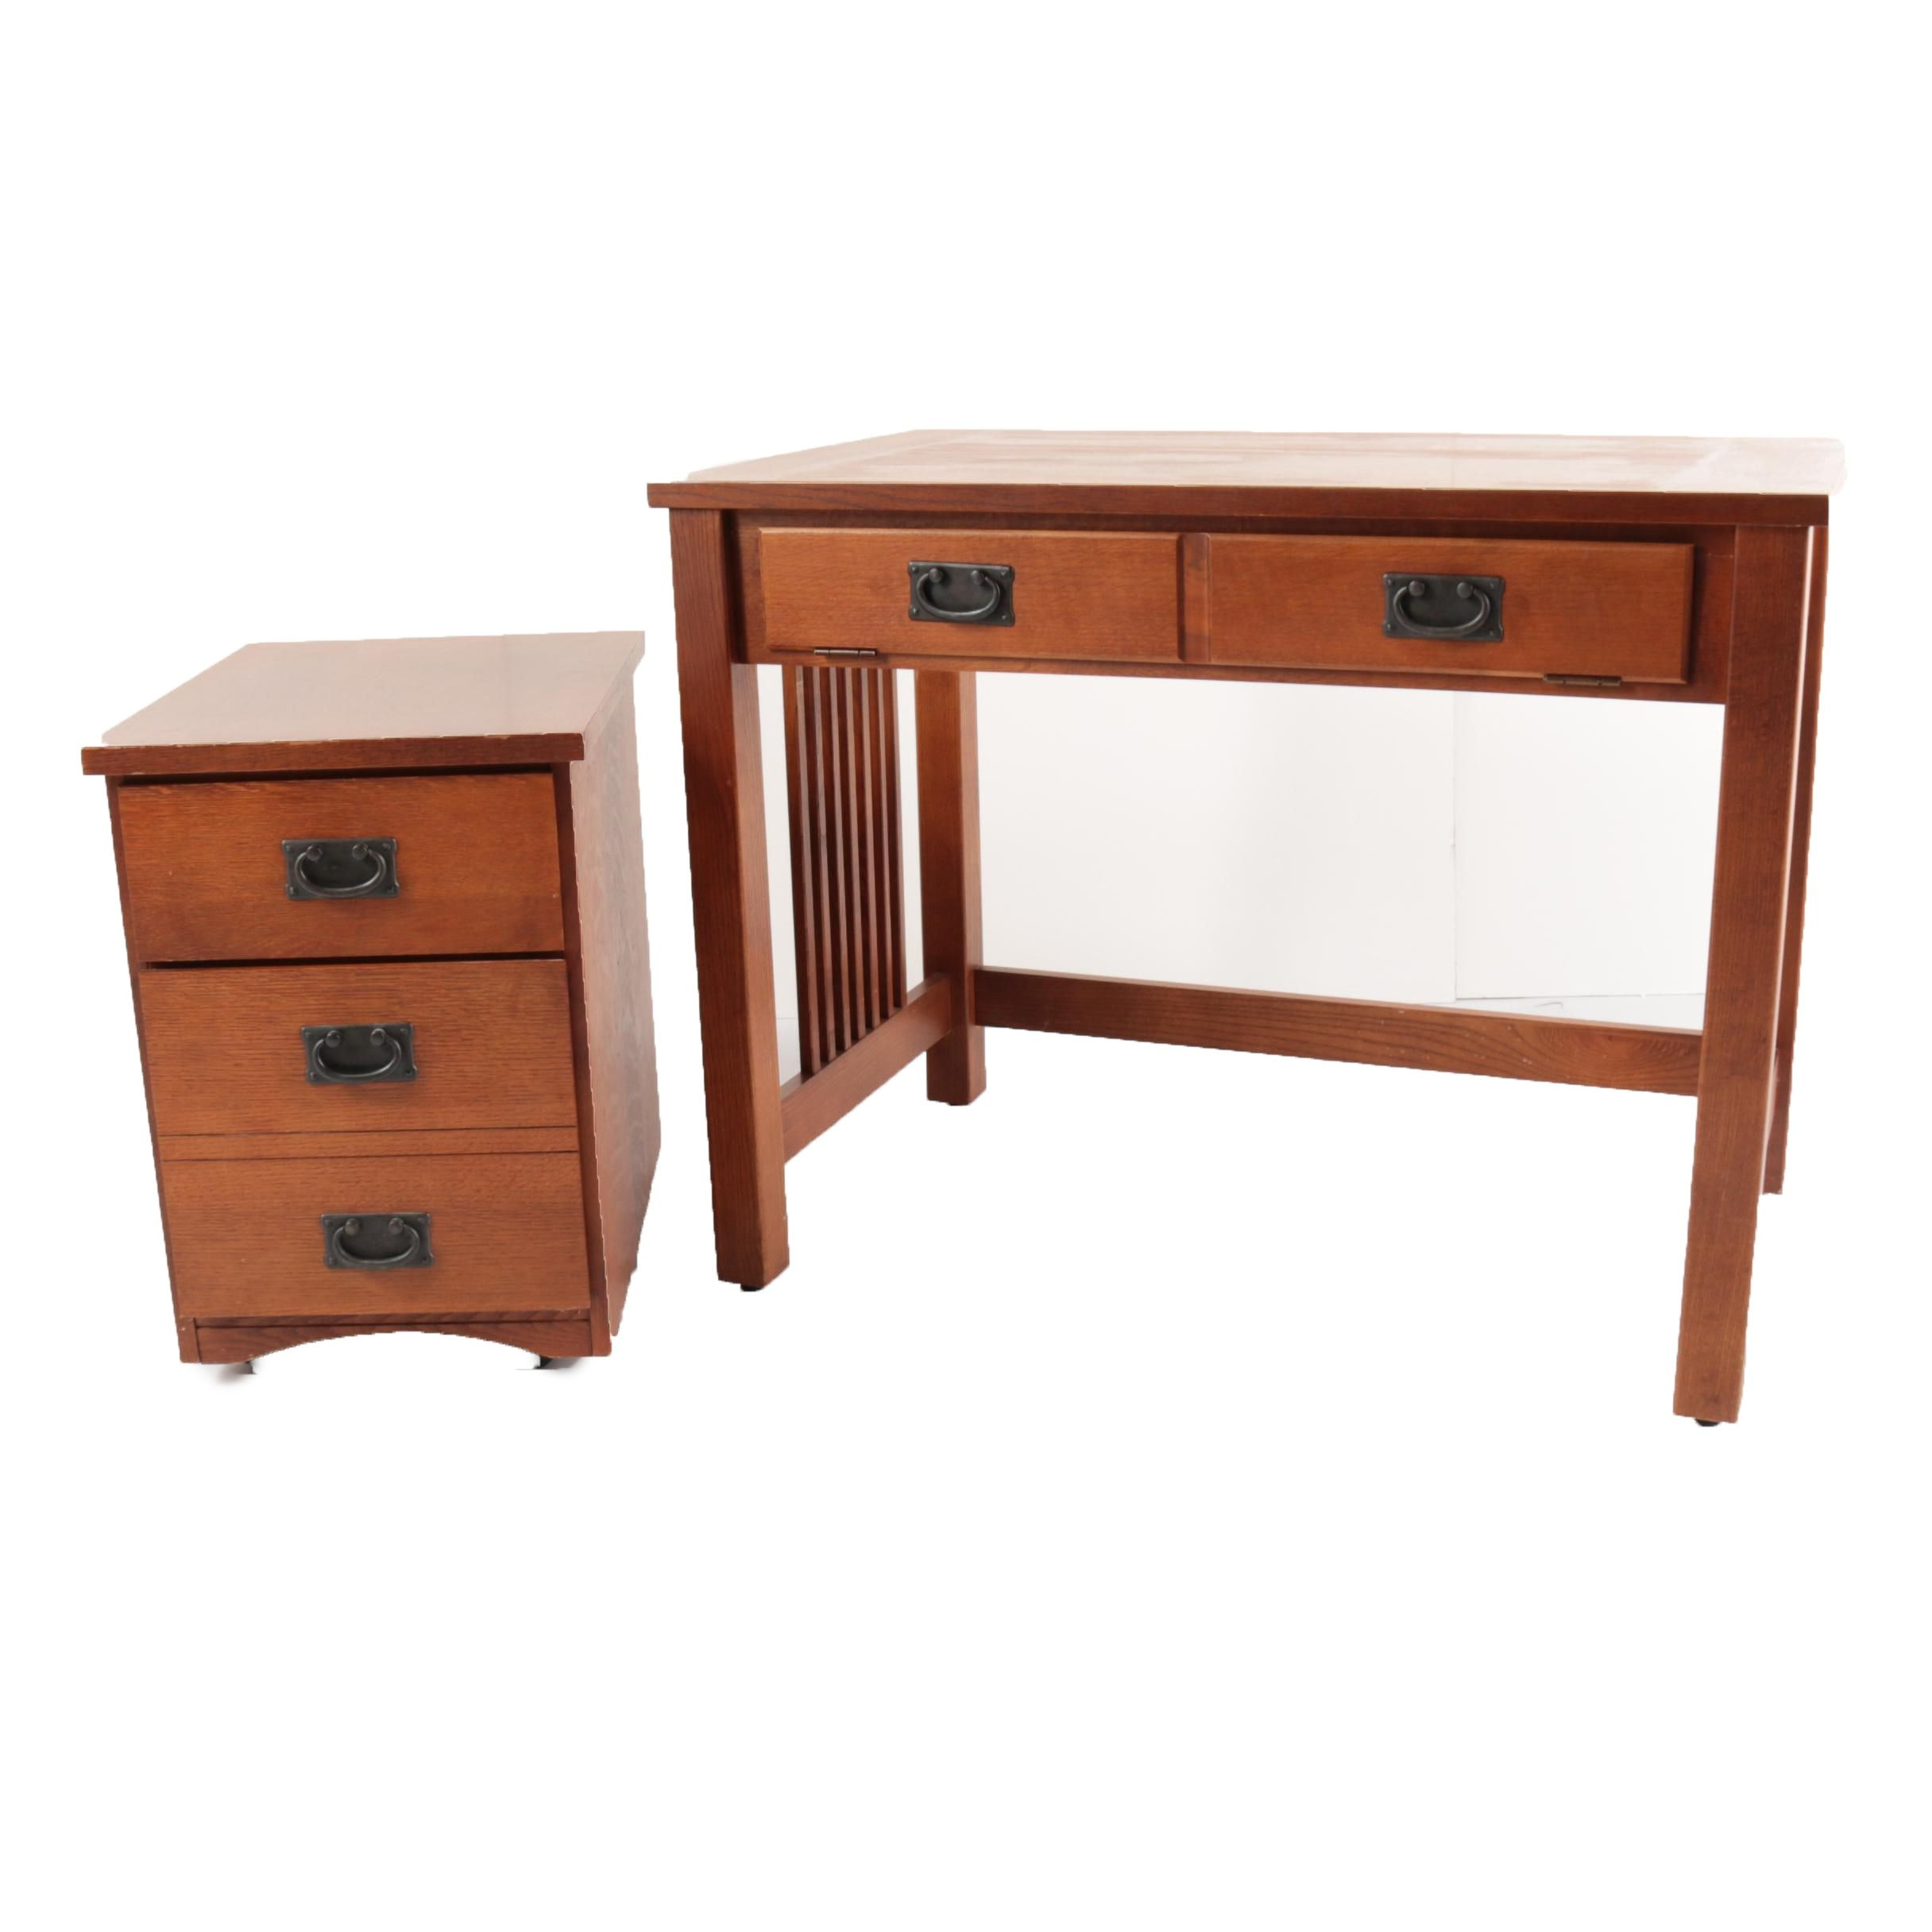 Contemporary Arts and Crafts Style Desk with Two-Drawer File Cabinet